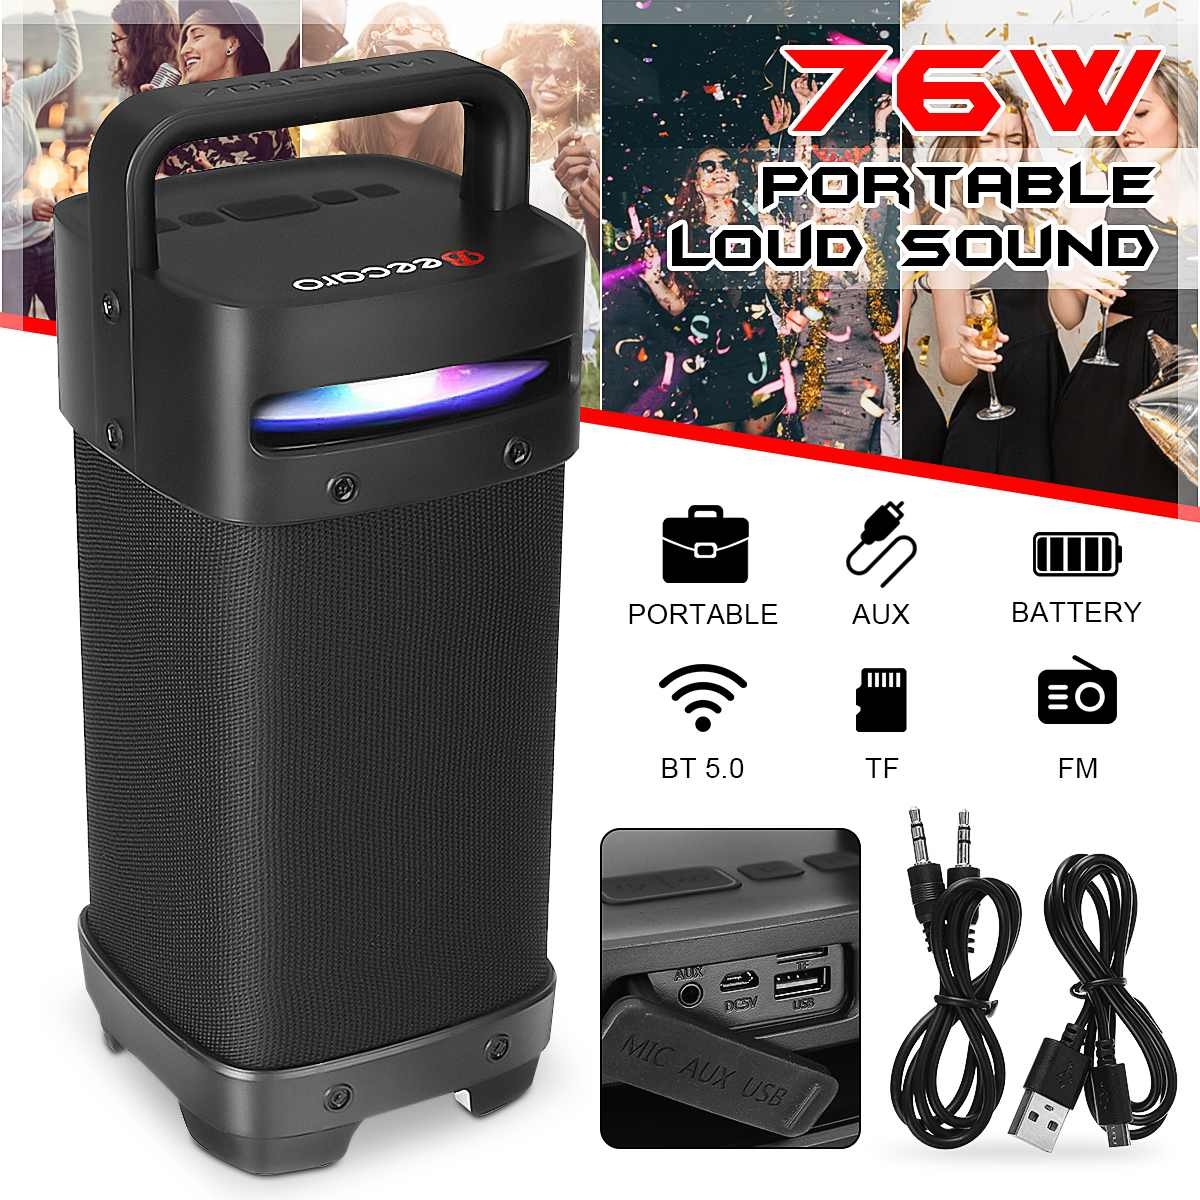 Portable Bluetooth 5.0 tws Speakers 76W Loud Outdoor Speakers with Subwoofer FM Radio LED Lights HIFI Stereo Sound Boombox